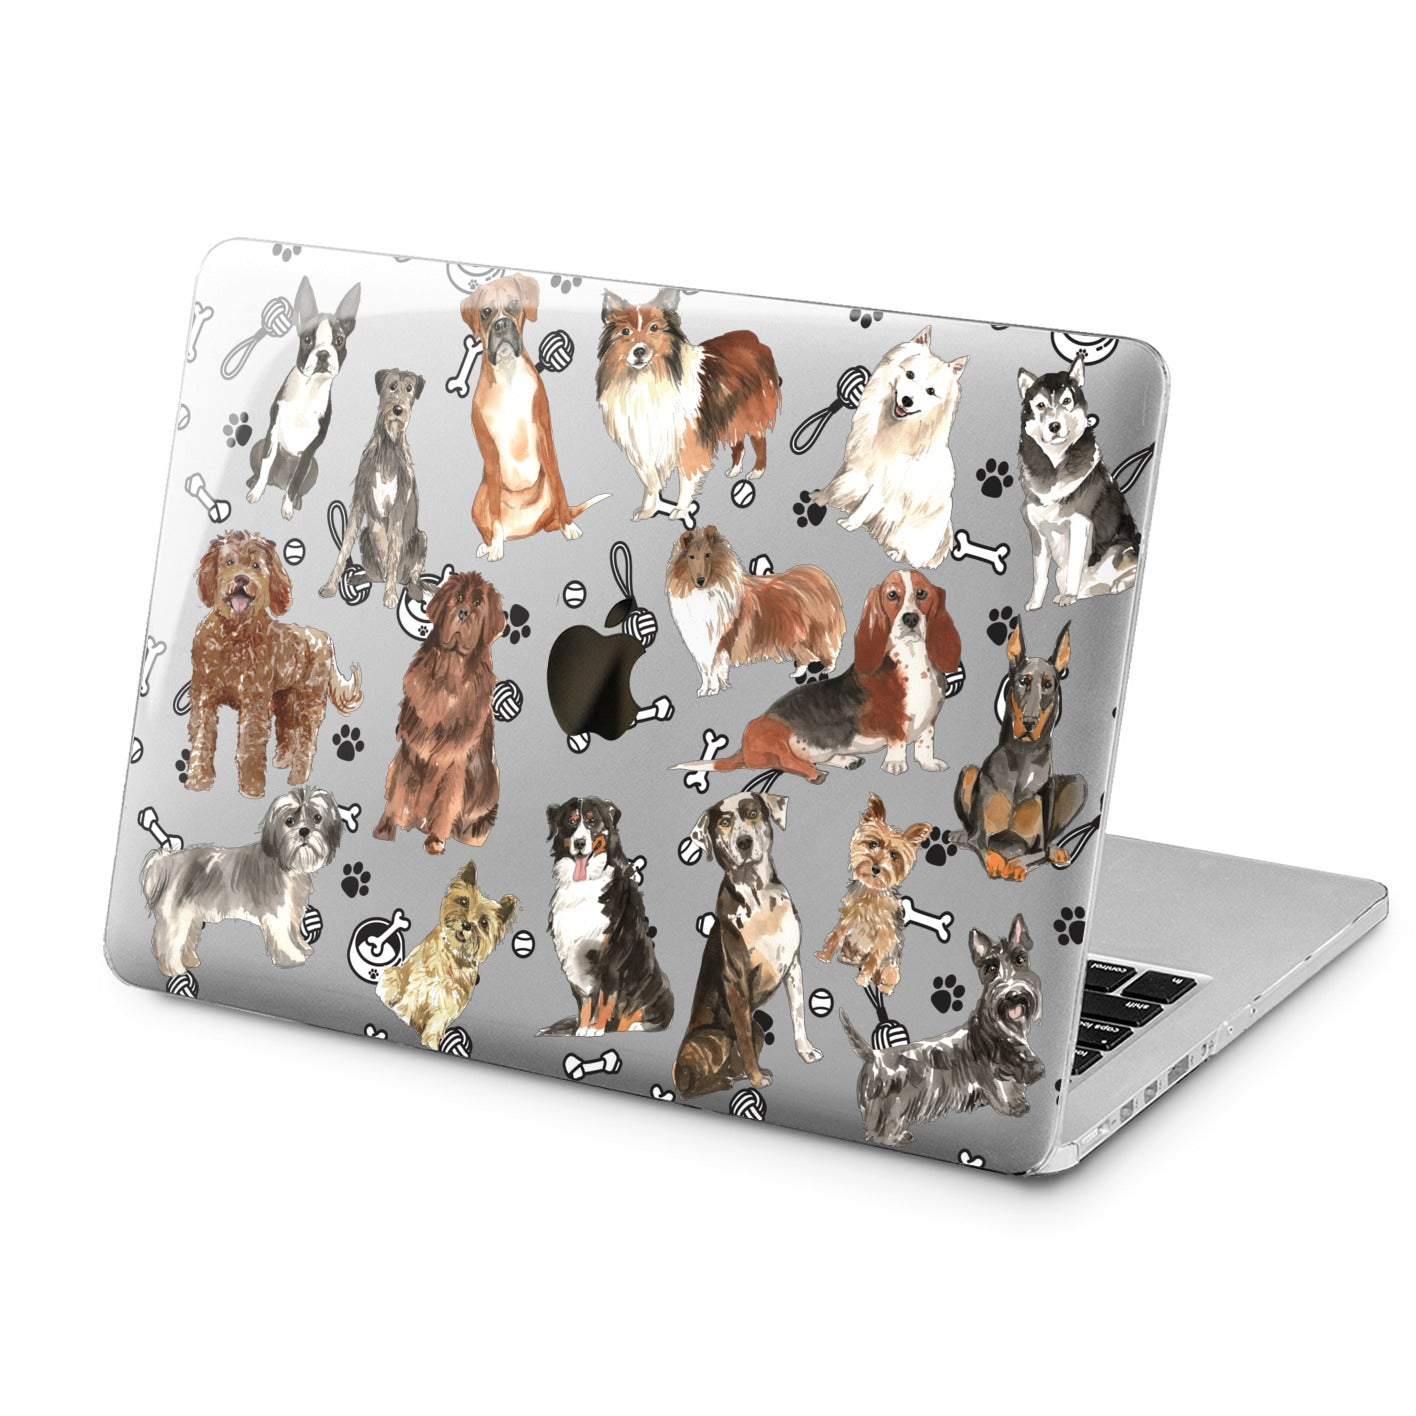 Lex Altern Lex Altern Amazing Dogs Case for your Laptop Apple Macbook.